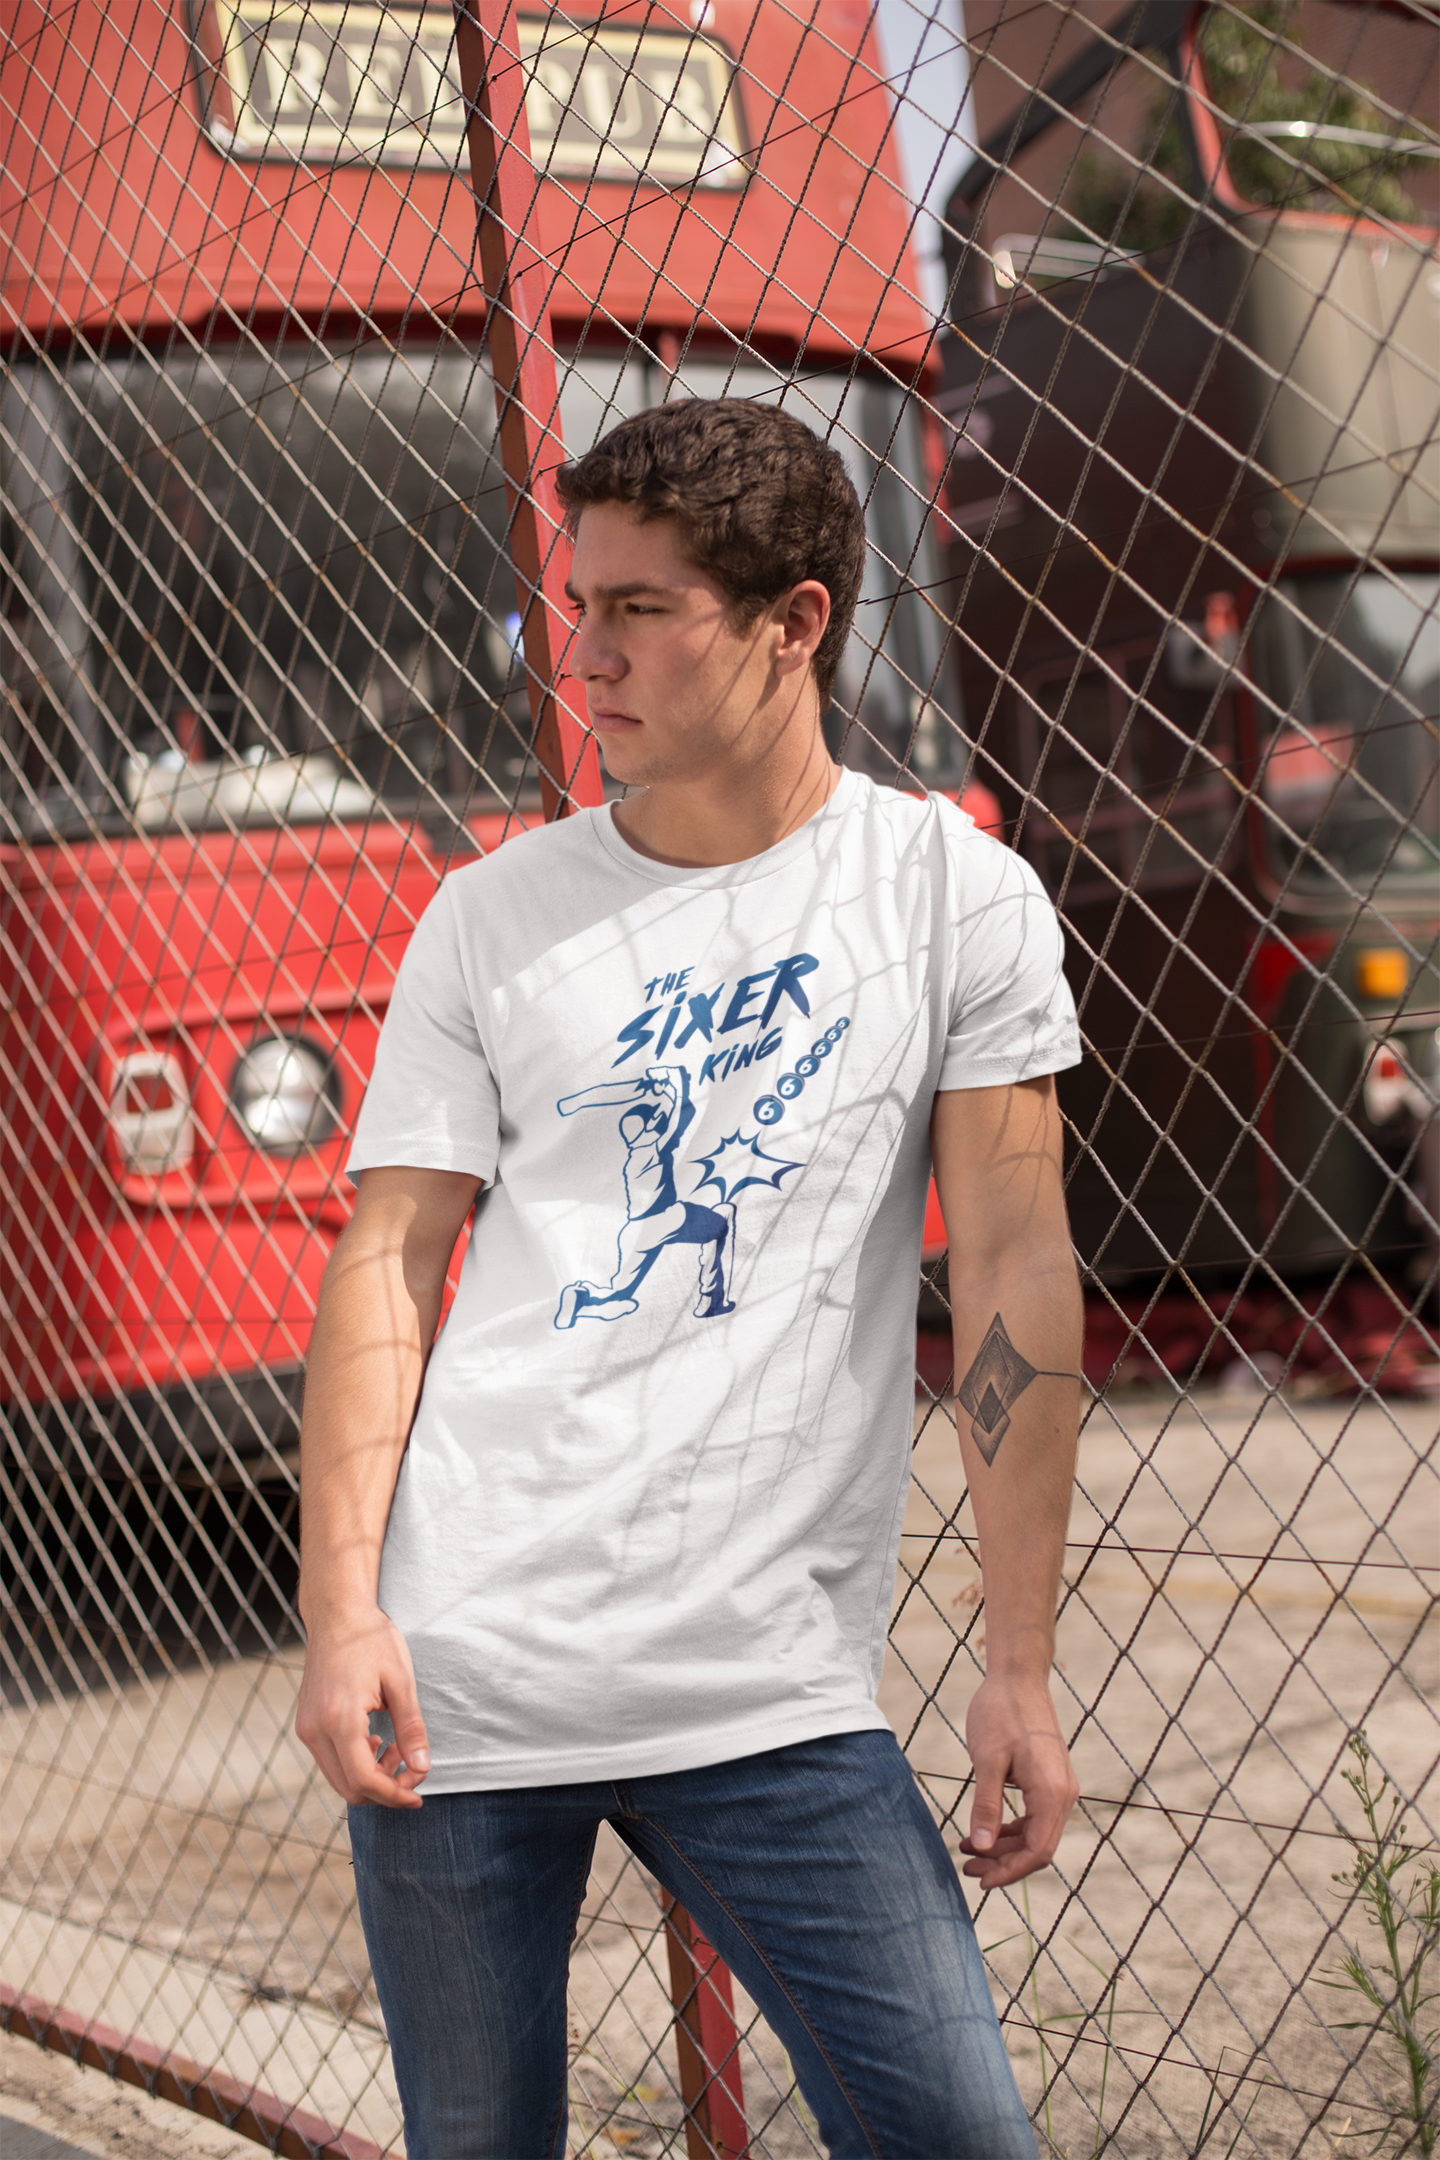 Printed Cricket T-Shirt for Men - The Sixer King